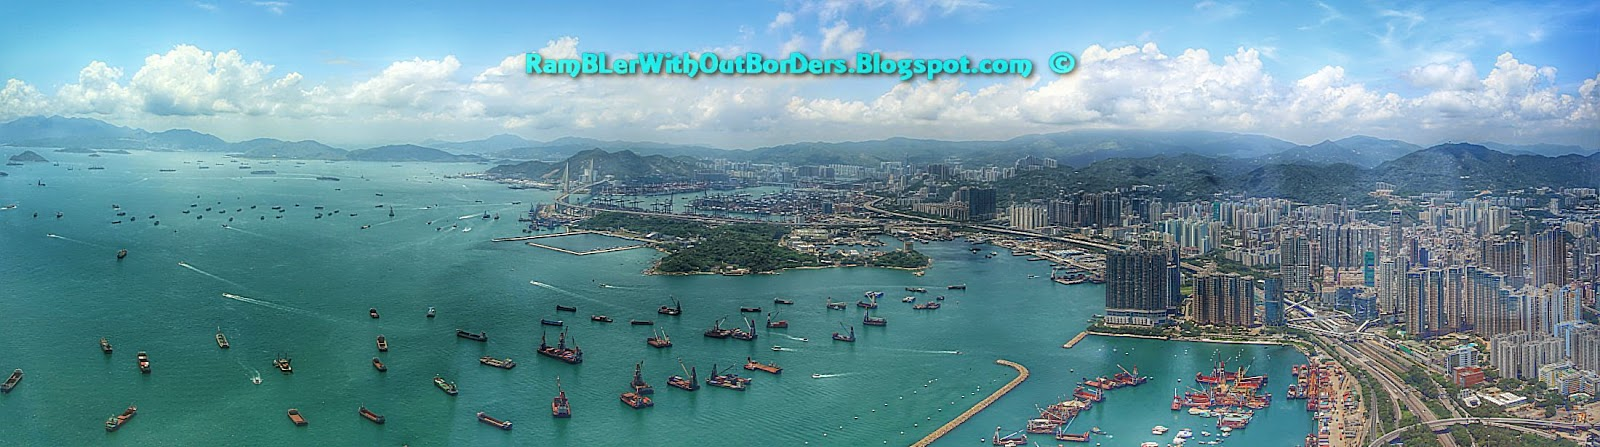 Aerial view, West Kowloon, Hong Kong